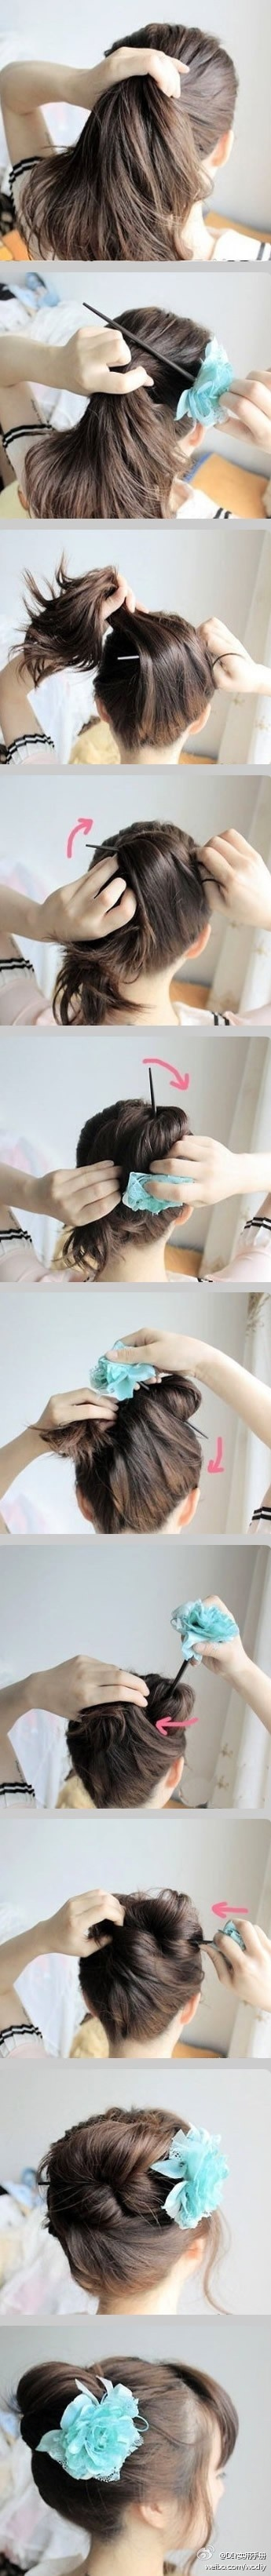 Hairstyle using a chopstick